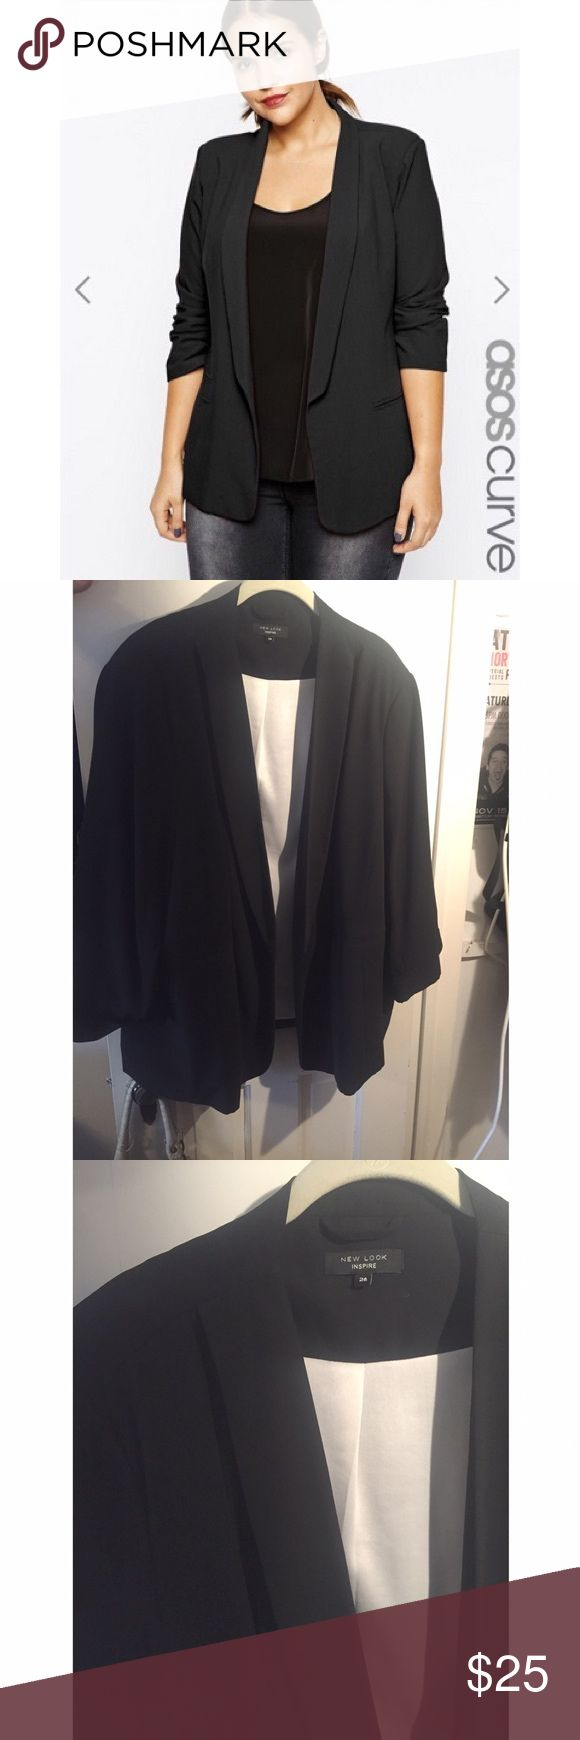 New Look Curve Black Blazer w/ cream inside Size 28 UK / 24 US! Bought a few years ago from Asos Curve online and didn't even take it out of my closet and now it's too big on me. Such a cute blazer for work & even casual nights out! ASOS Curve Jackets & Coats Blazers